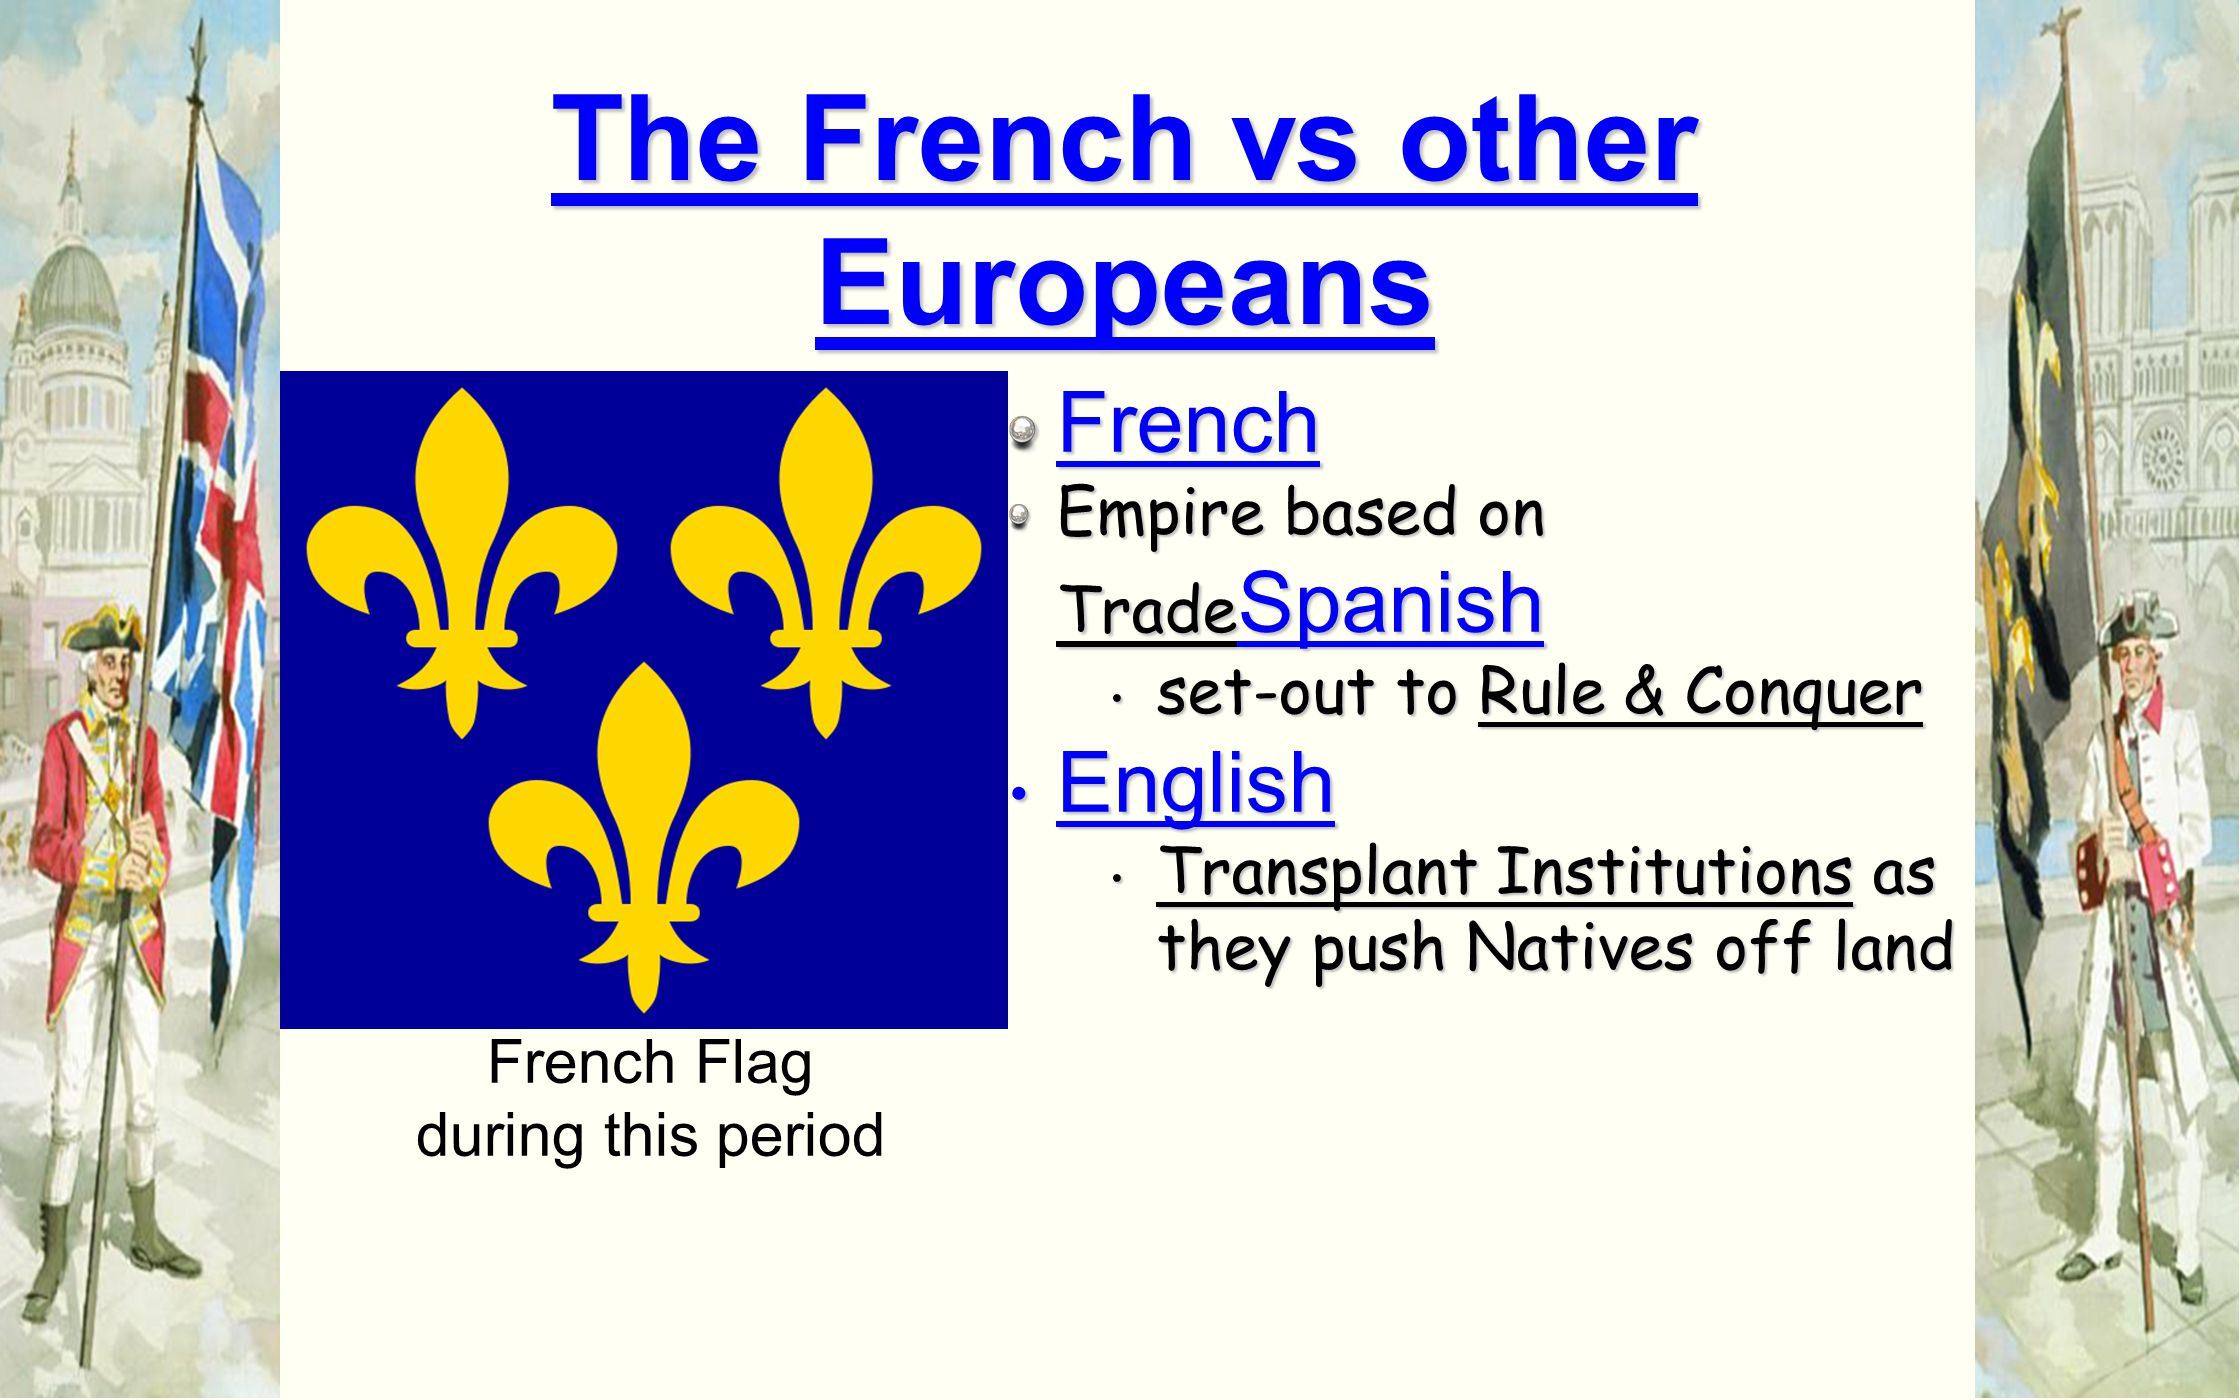 The French vs other Europeans